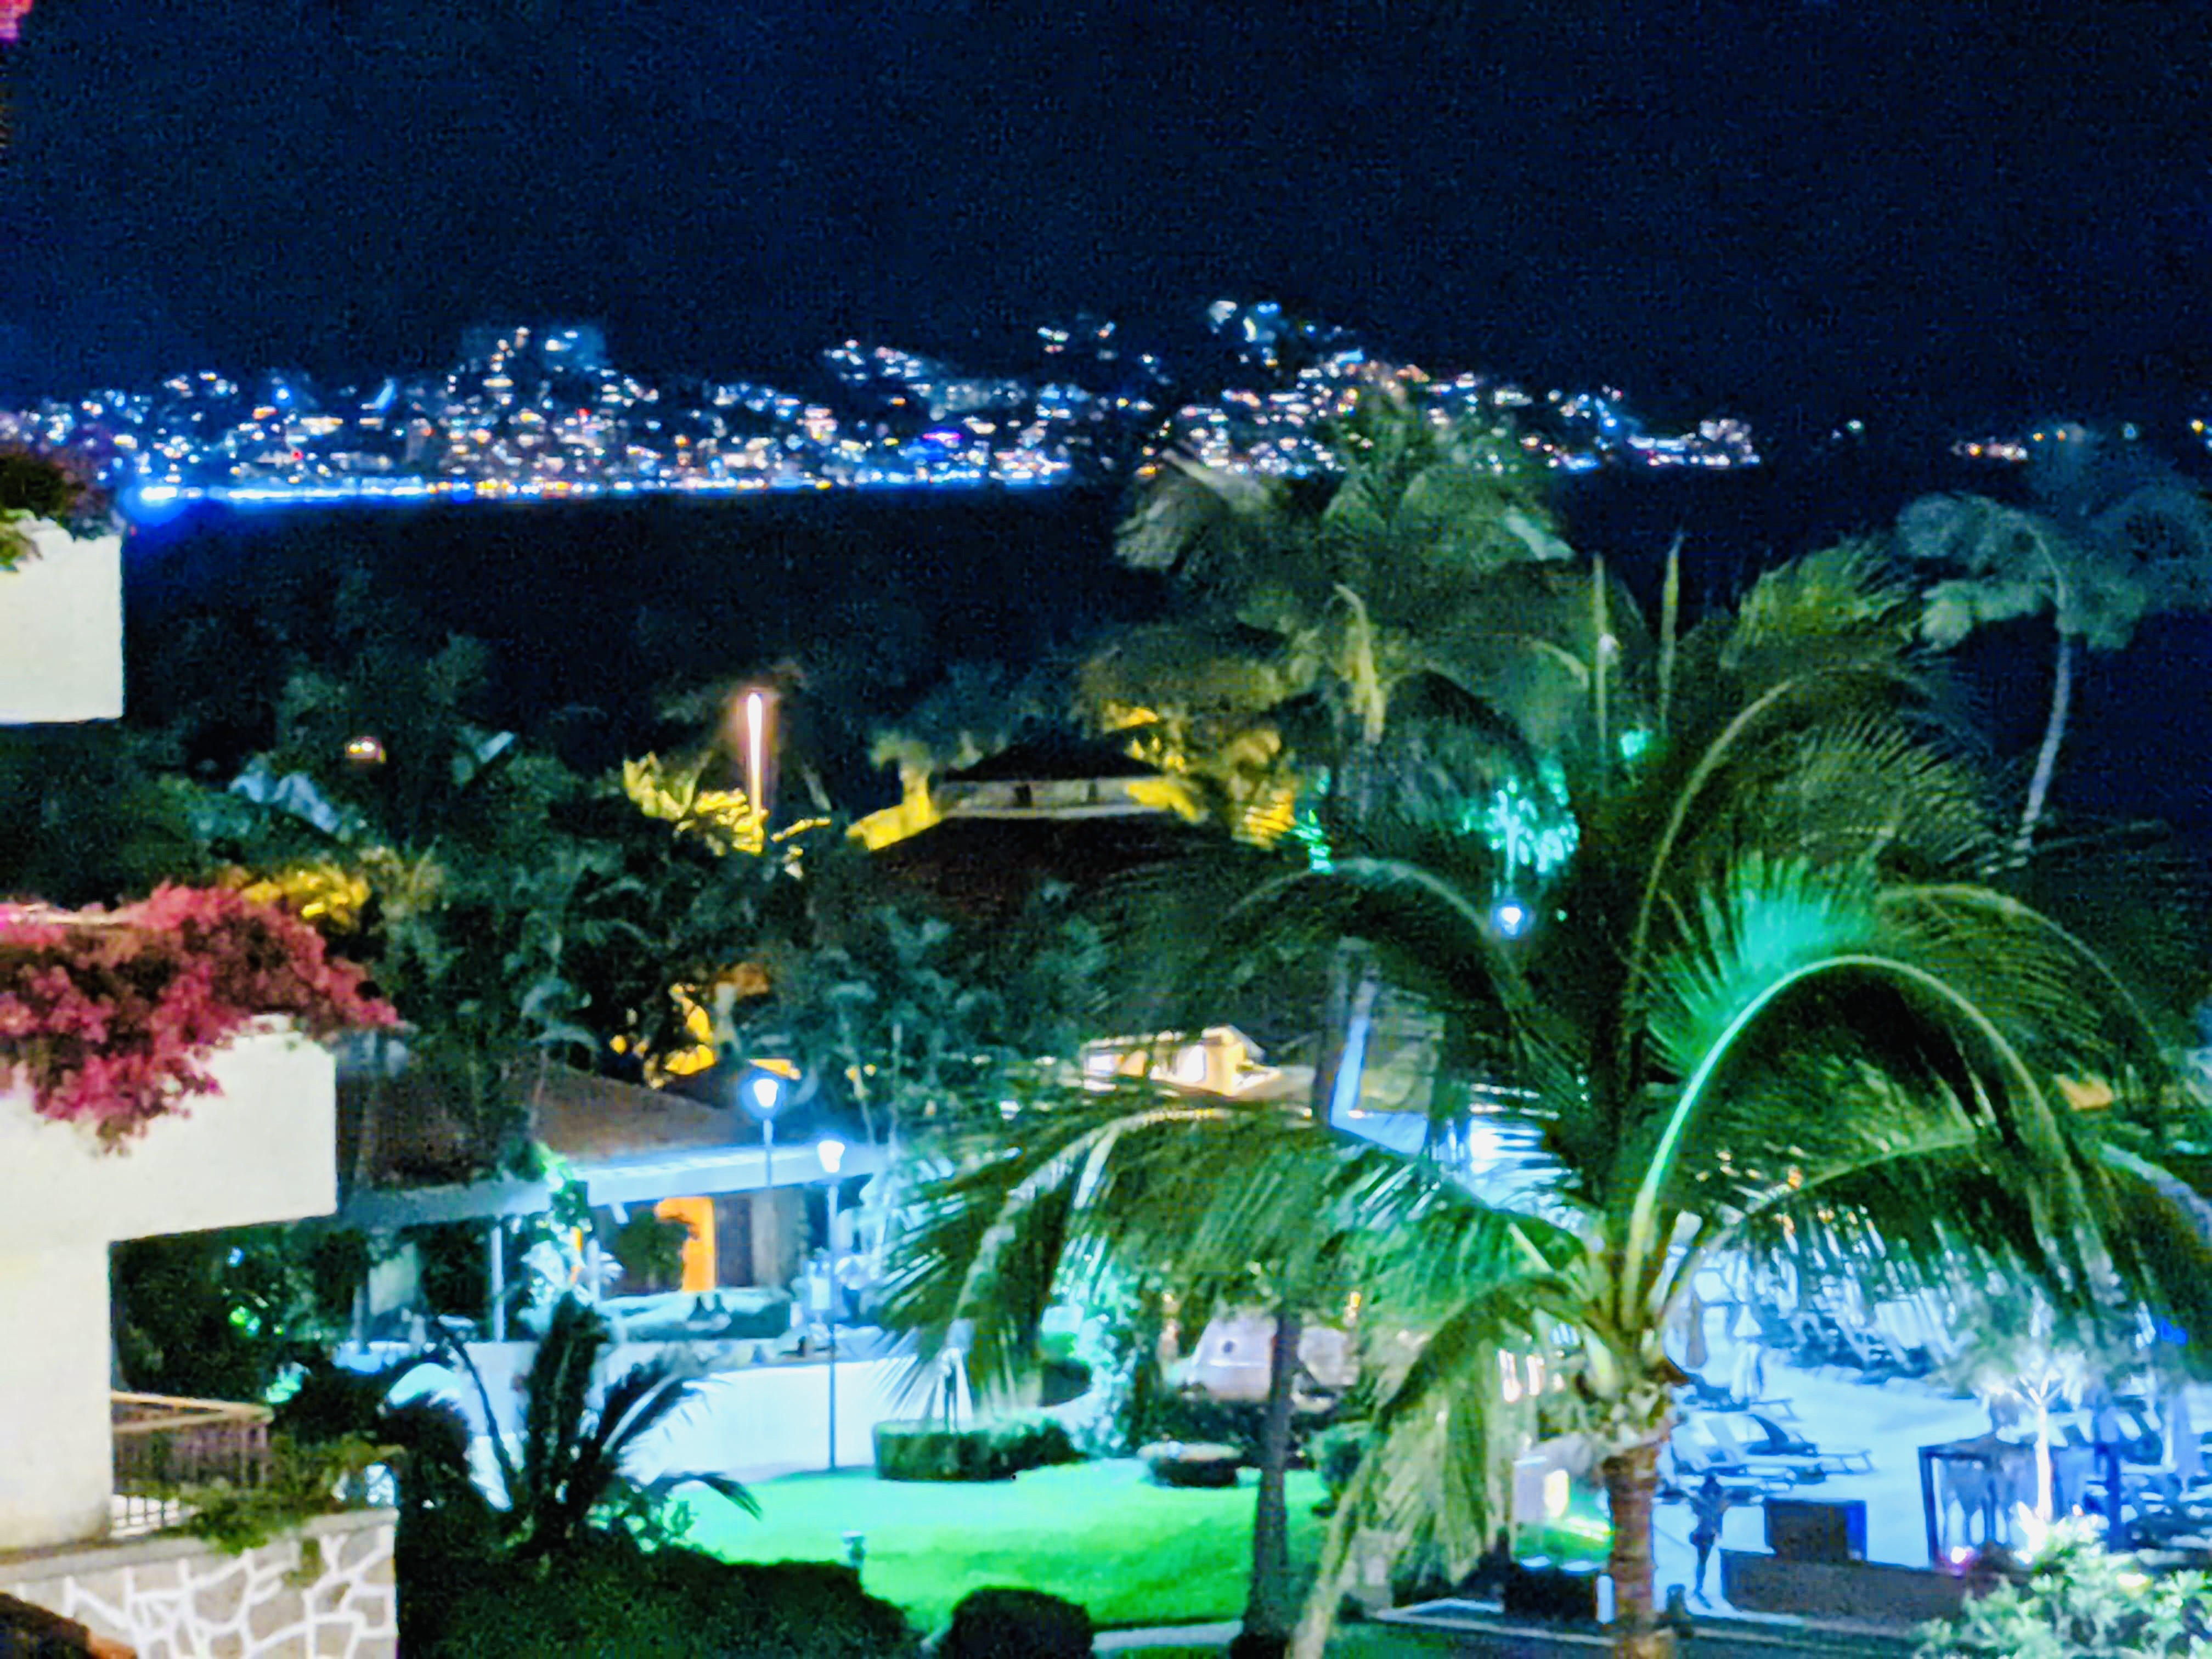 View from our terrace at the Marriott, of the oceans, mountains, and the pool area at night